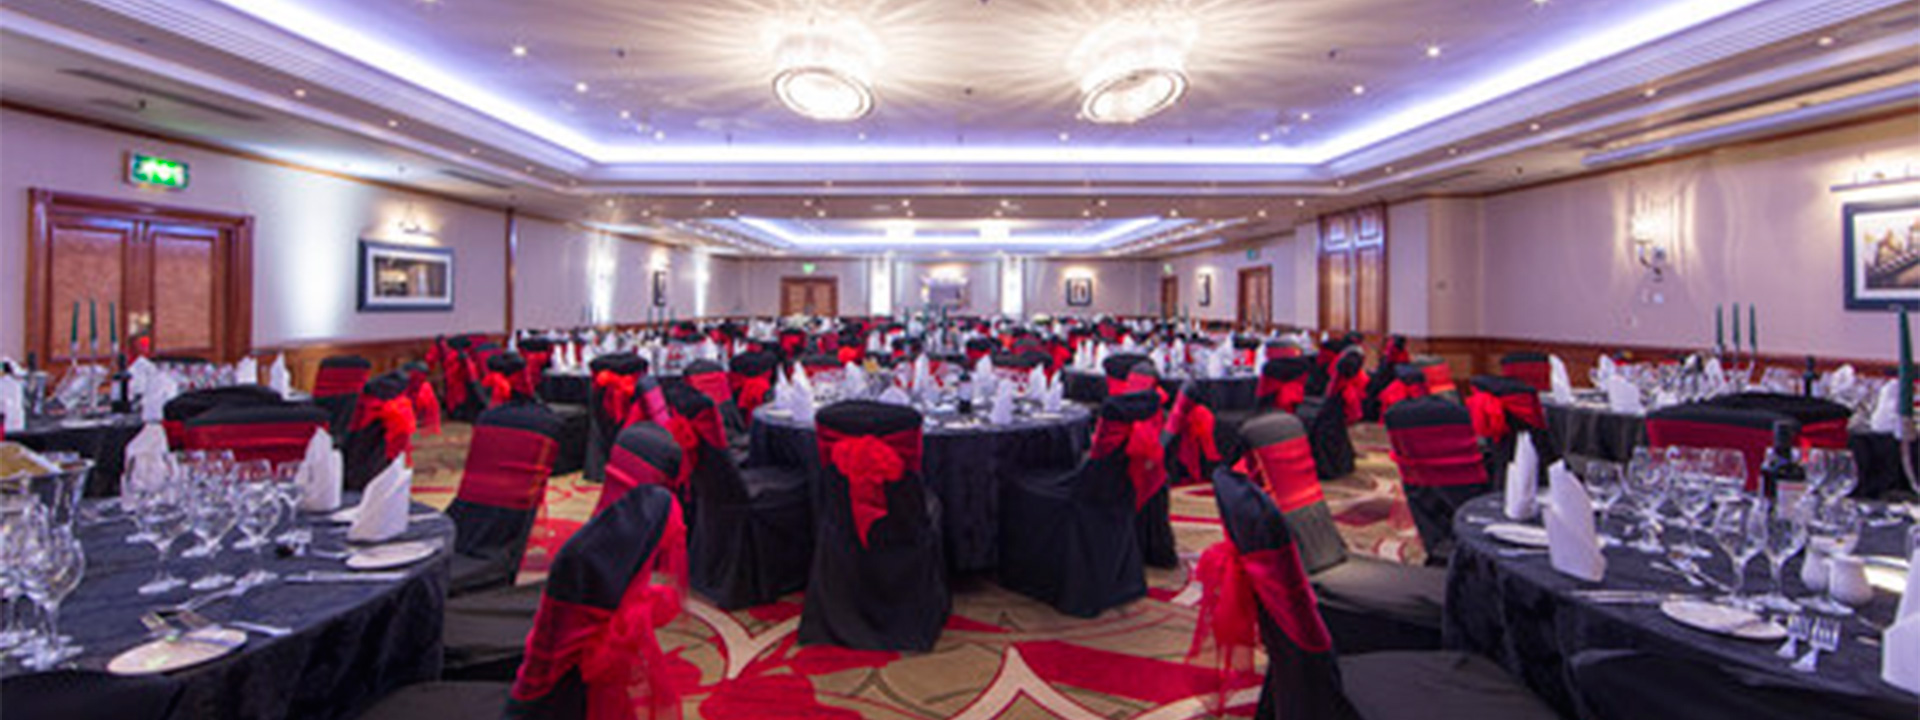 Office Christmas Amba Hotel Marble Arch Christmas Party